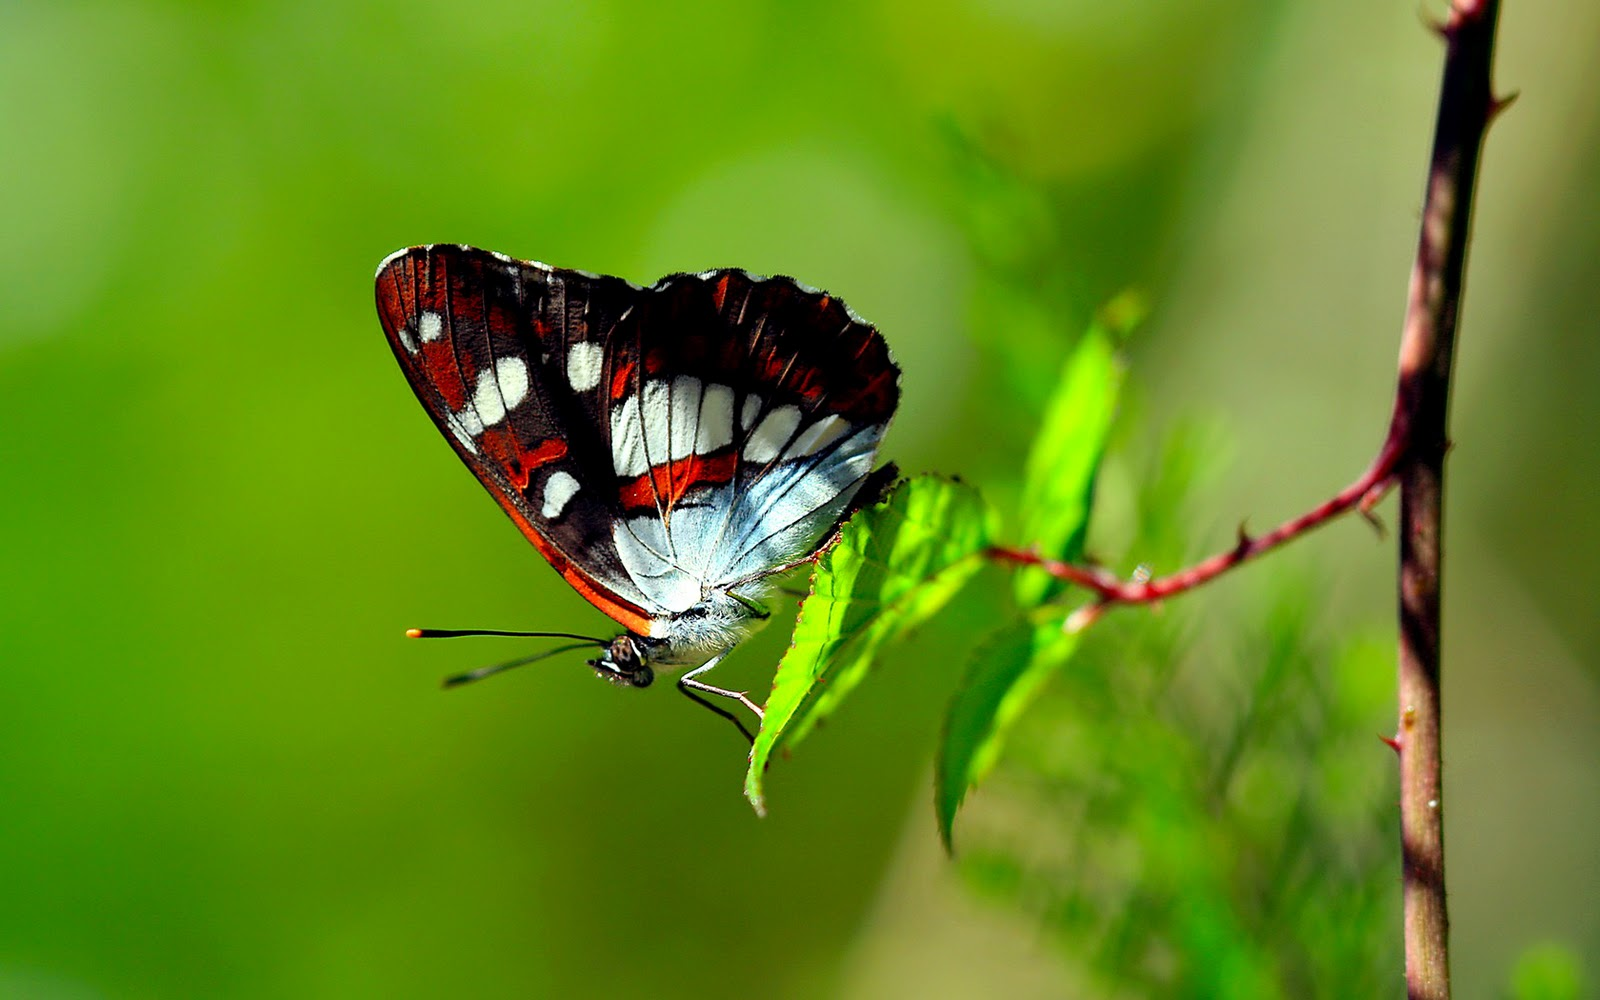 Colors of Nature HD Butterfly Wallpapers| HD Wallpapers ,Backgrounds ,Photos ,Pictures, Image ,PC